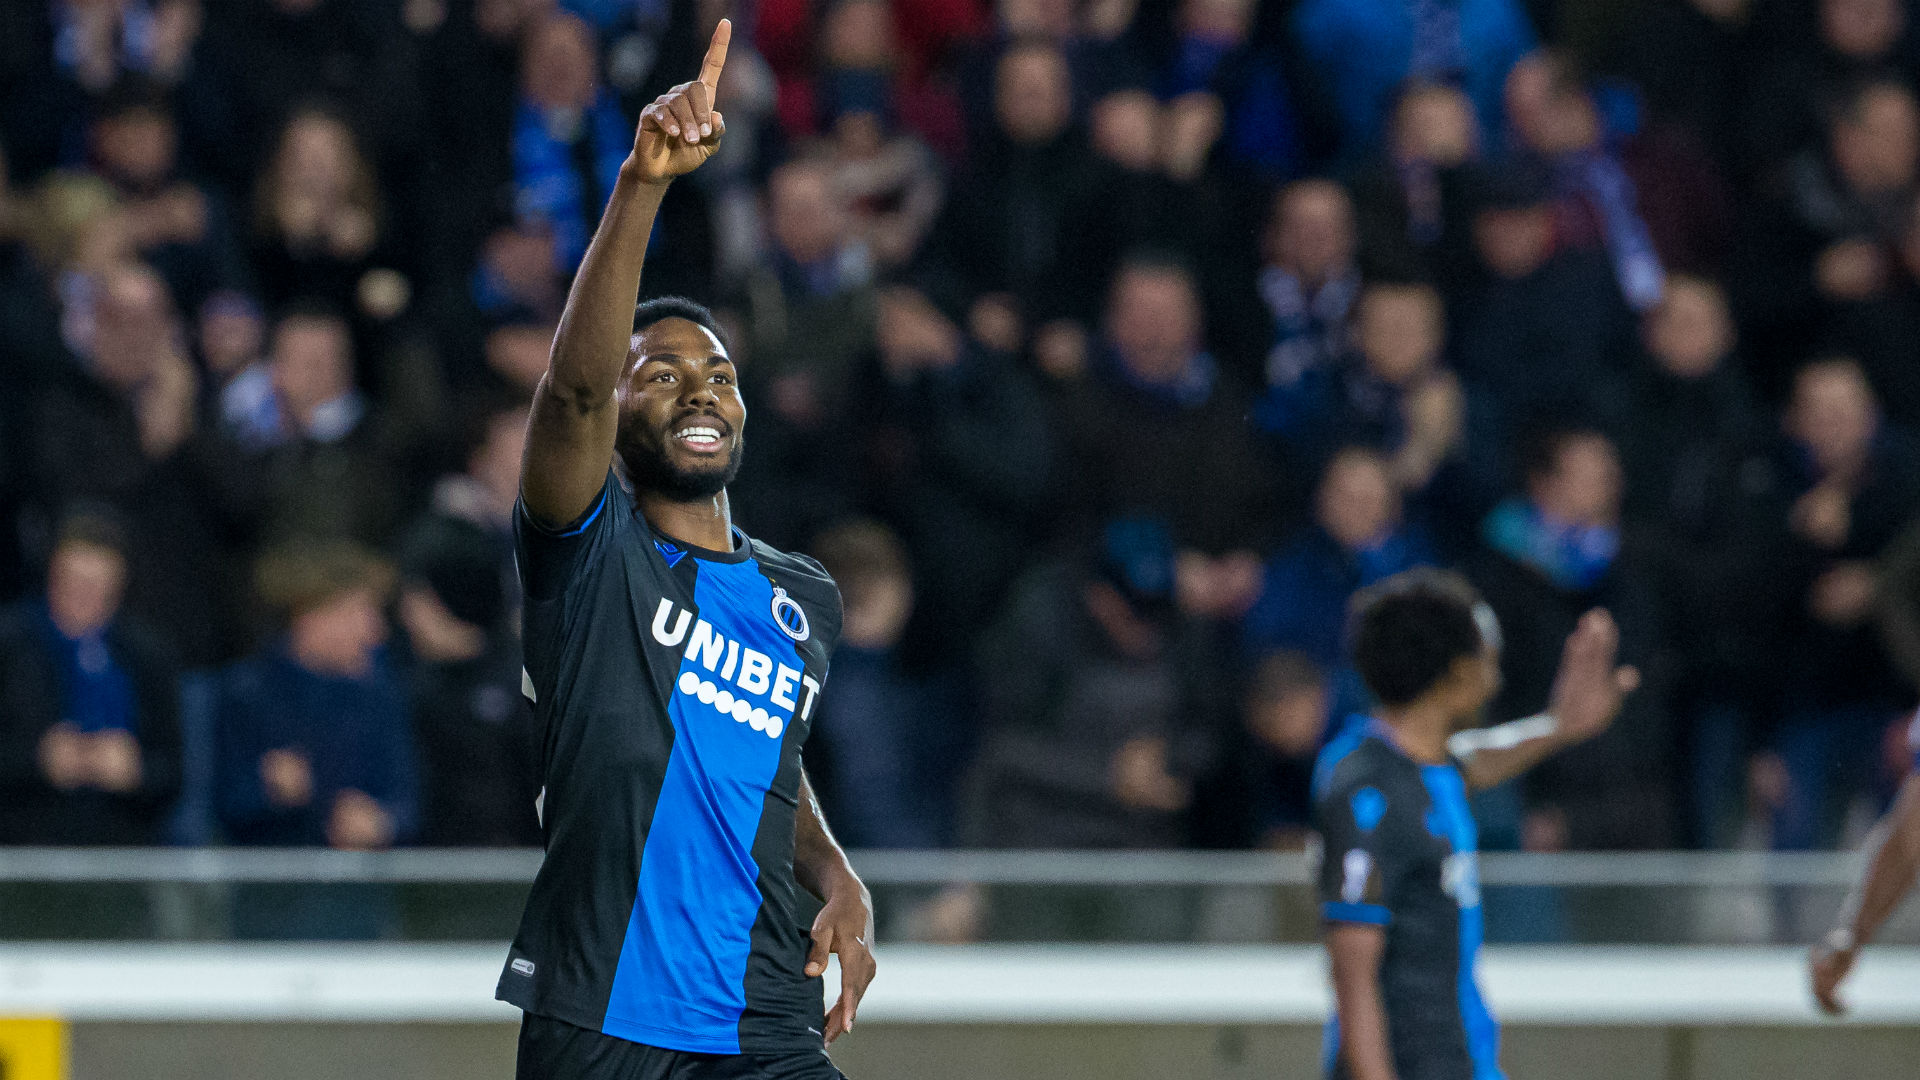 Club Brugge's Dennis reveals why he performed Ronaldo's celebration at Real Madrid